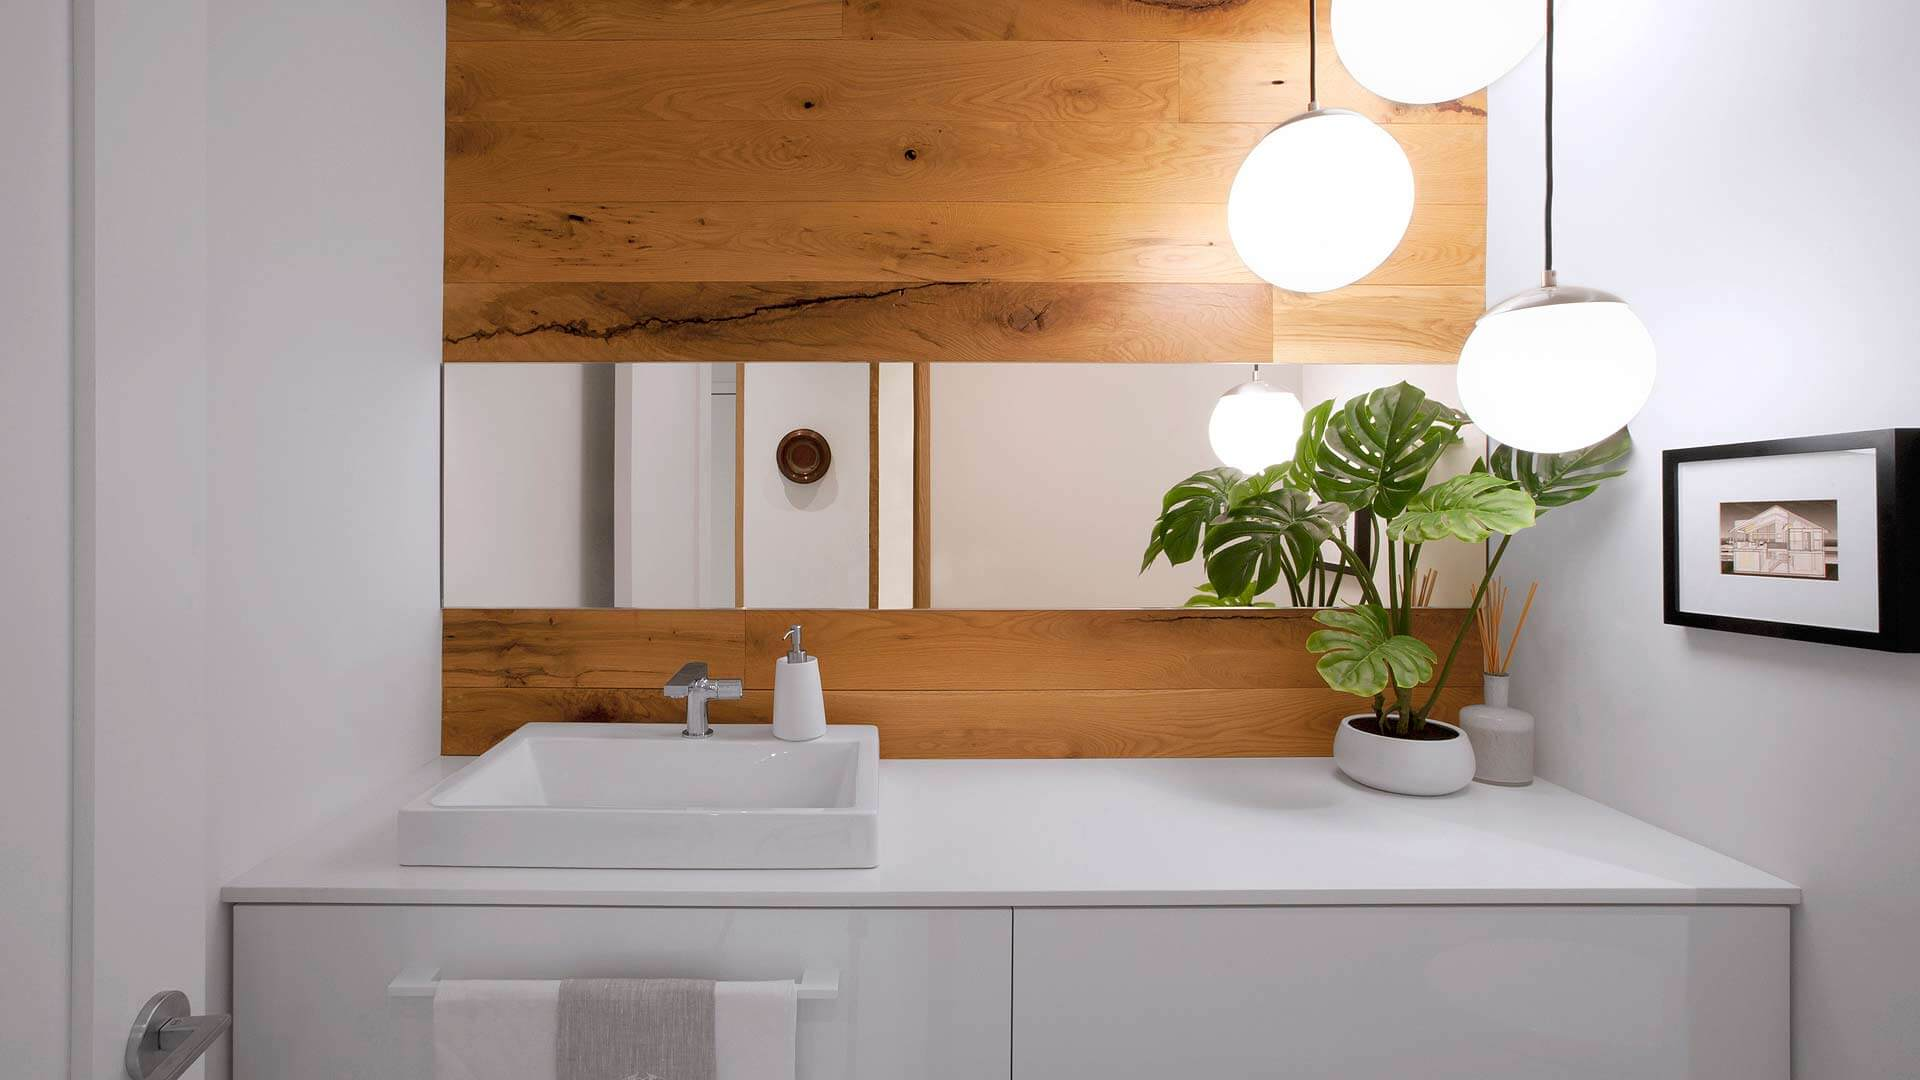 New powder room incorporates white oak into vanity wall with floating white vanity, horizontal mirror, and ball pendant lighting - Modern Lakehouse Renovation - Clearwater